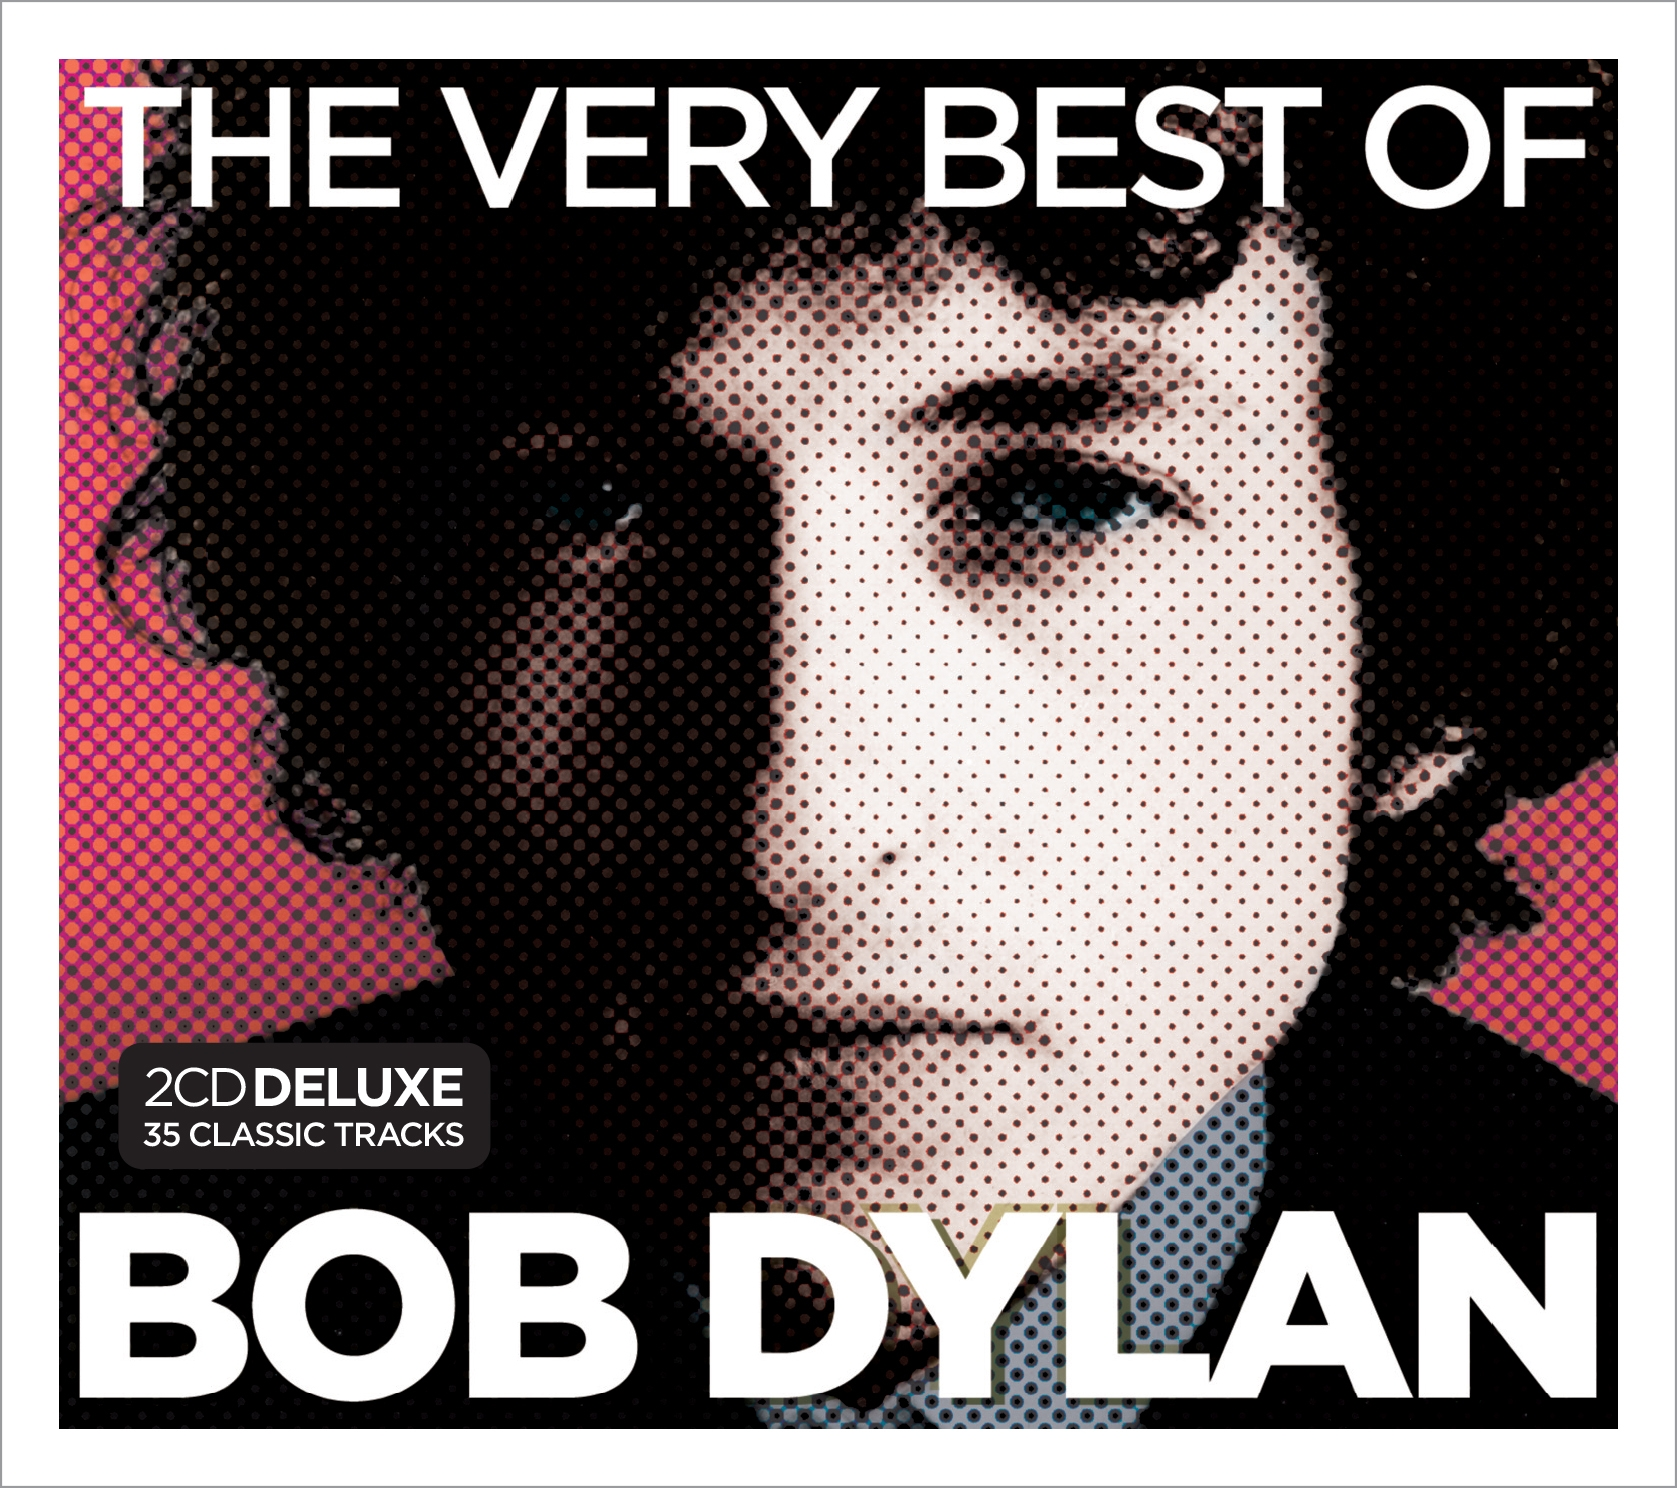 Bob Dylan The Very Best Of / New greatest hits